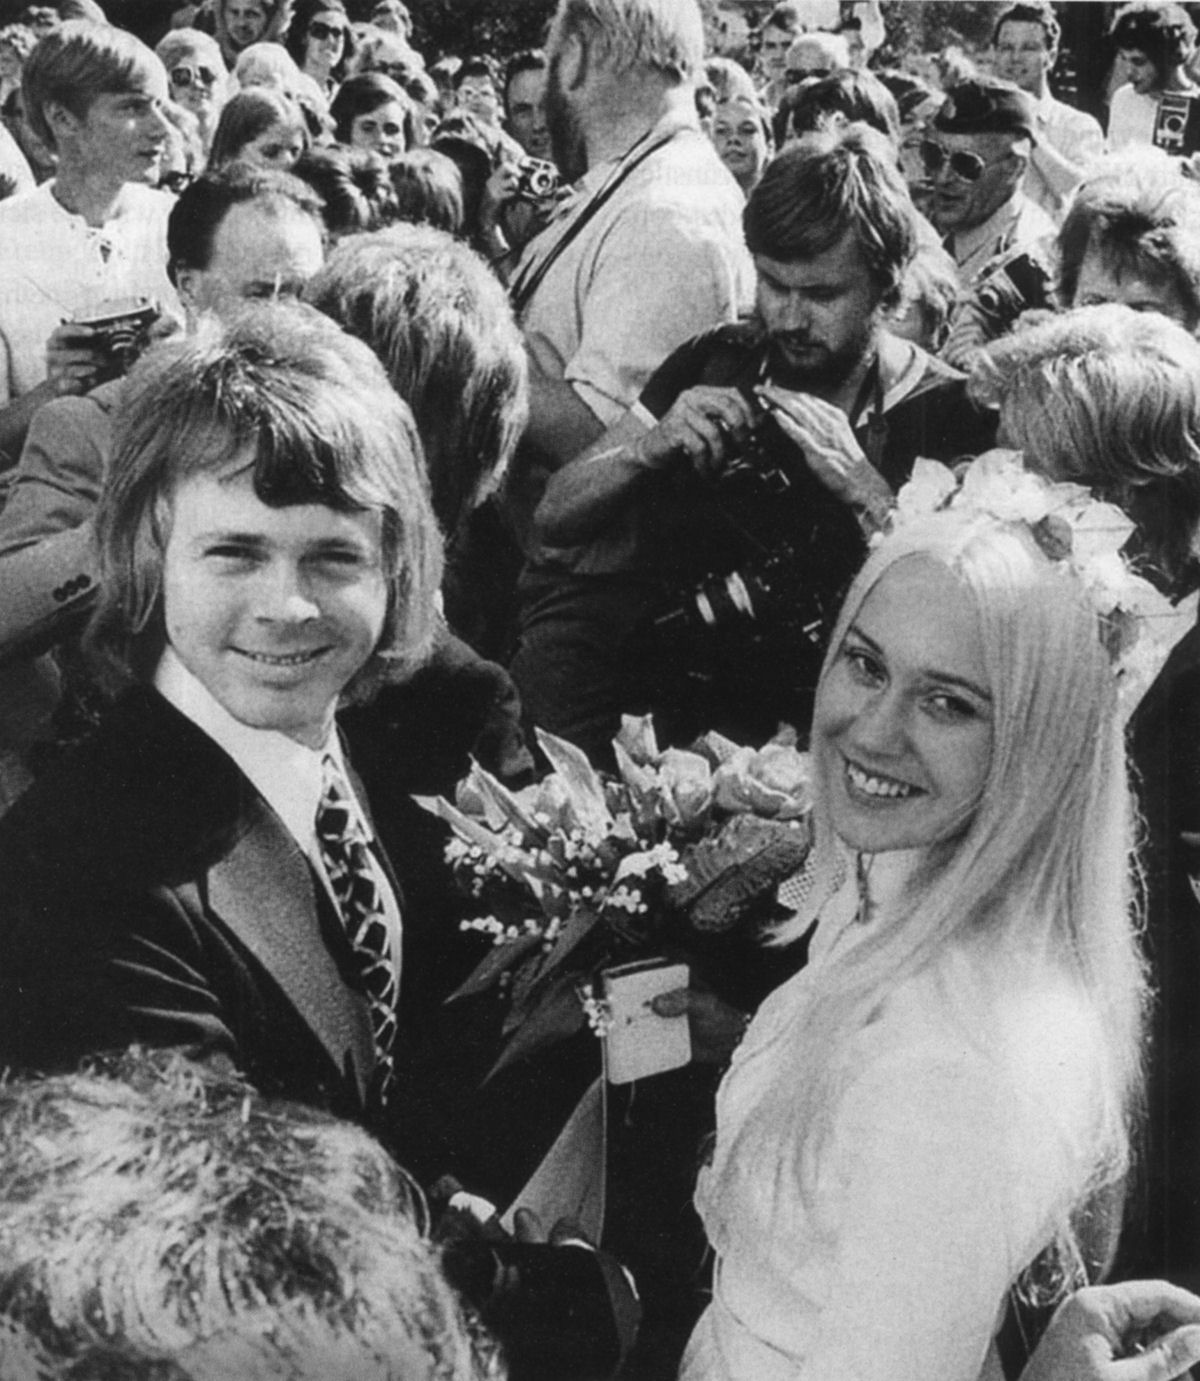 bjorn_agnetha_wedding_outside_in_crowd